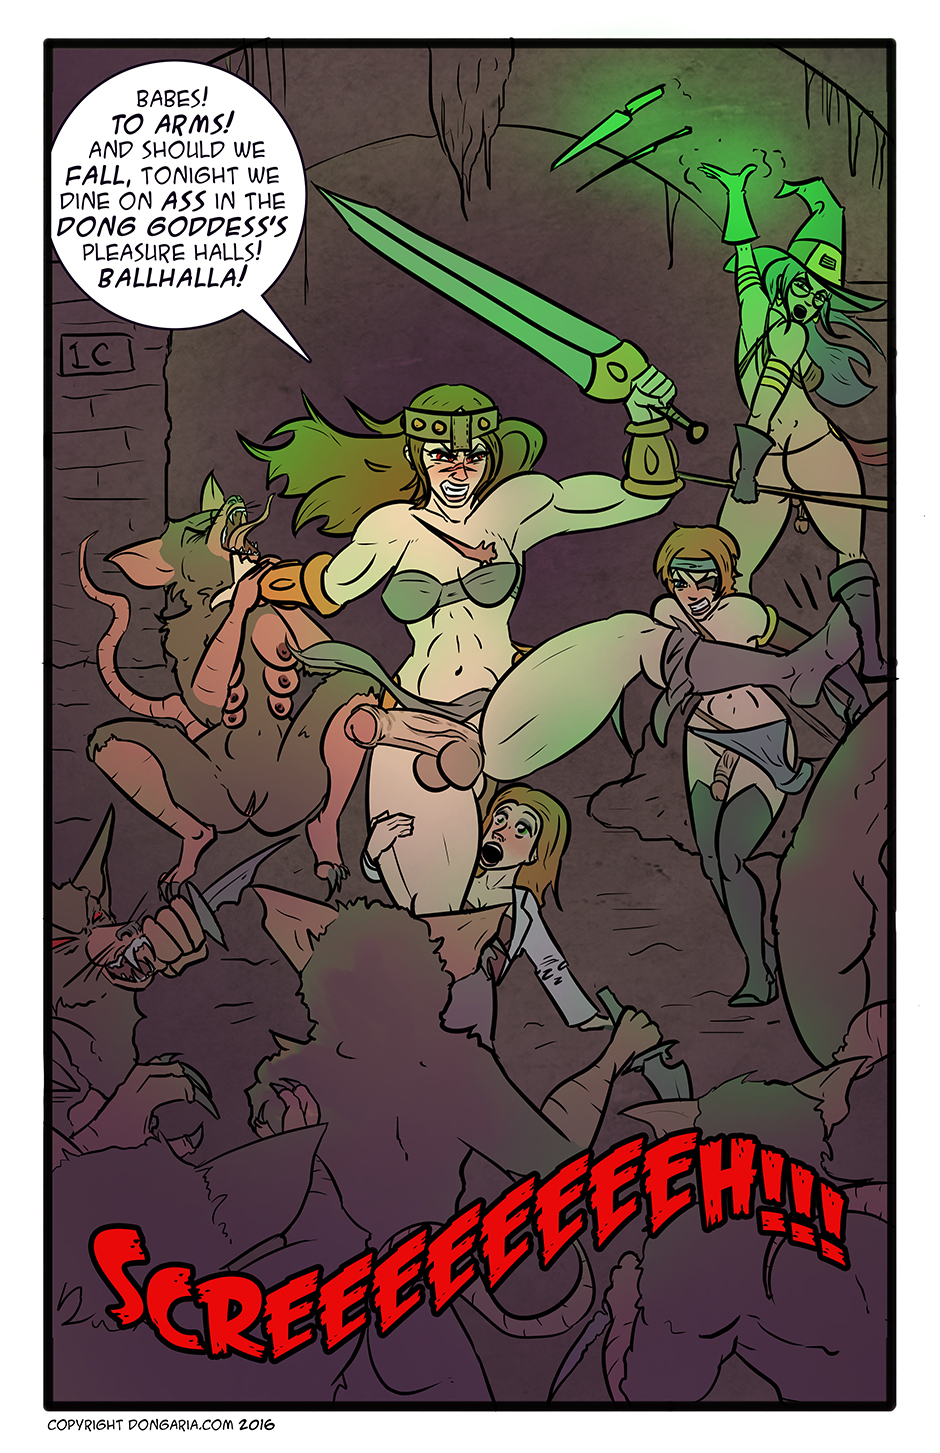 Babes of Dongaria Chapter 3 Page 12: Ballhalla Awaits!